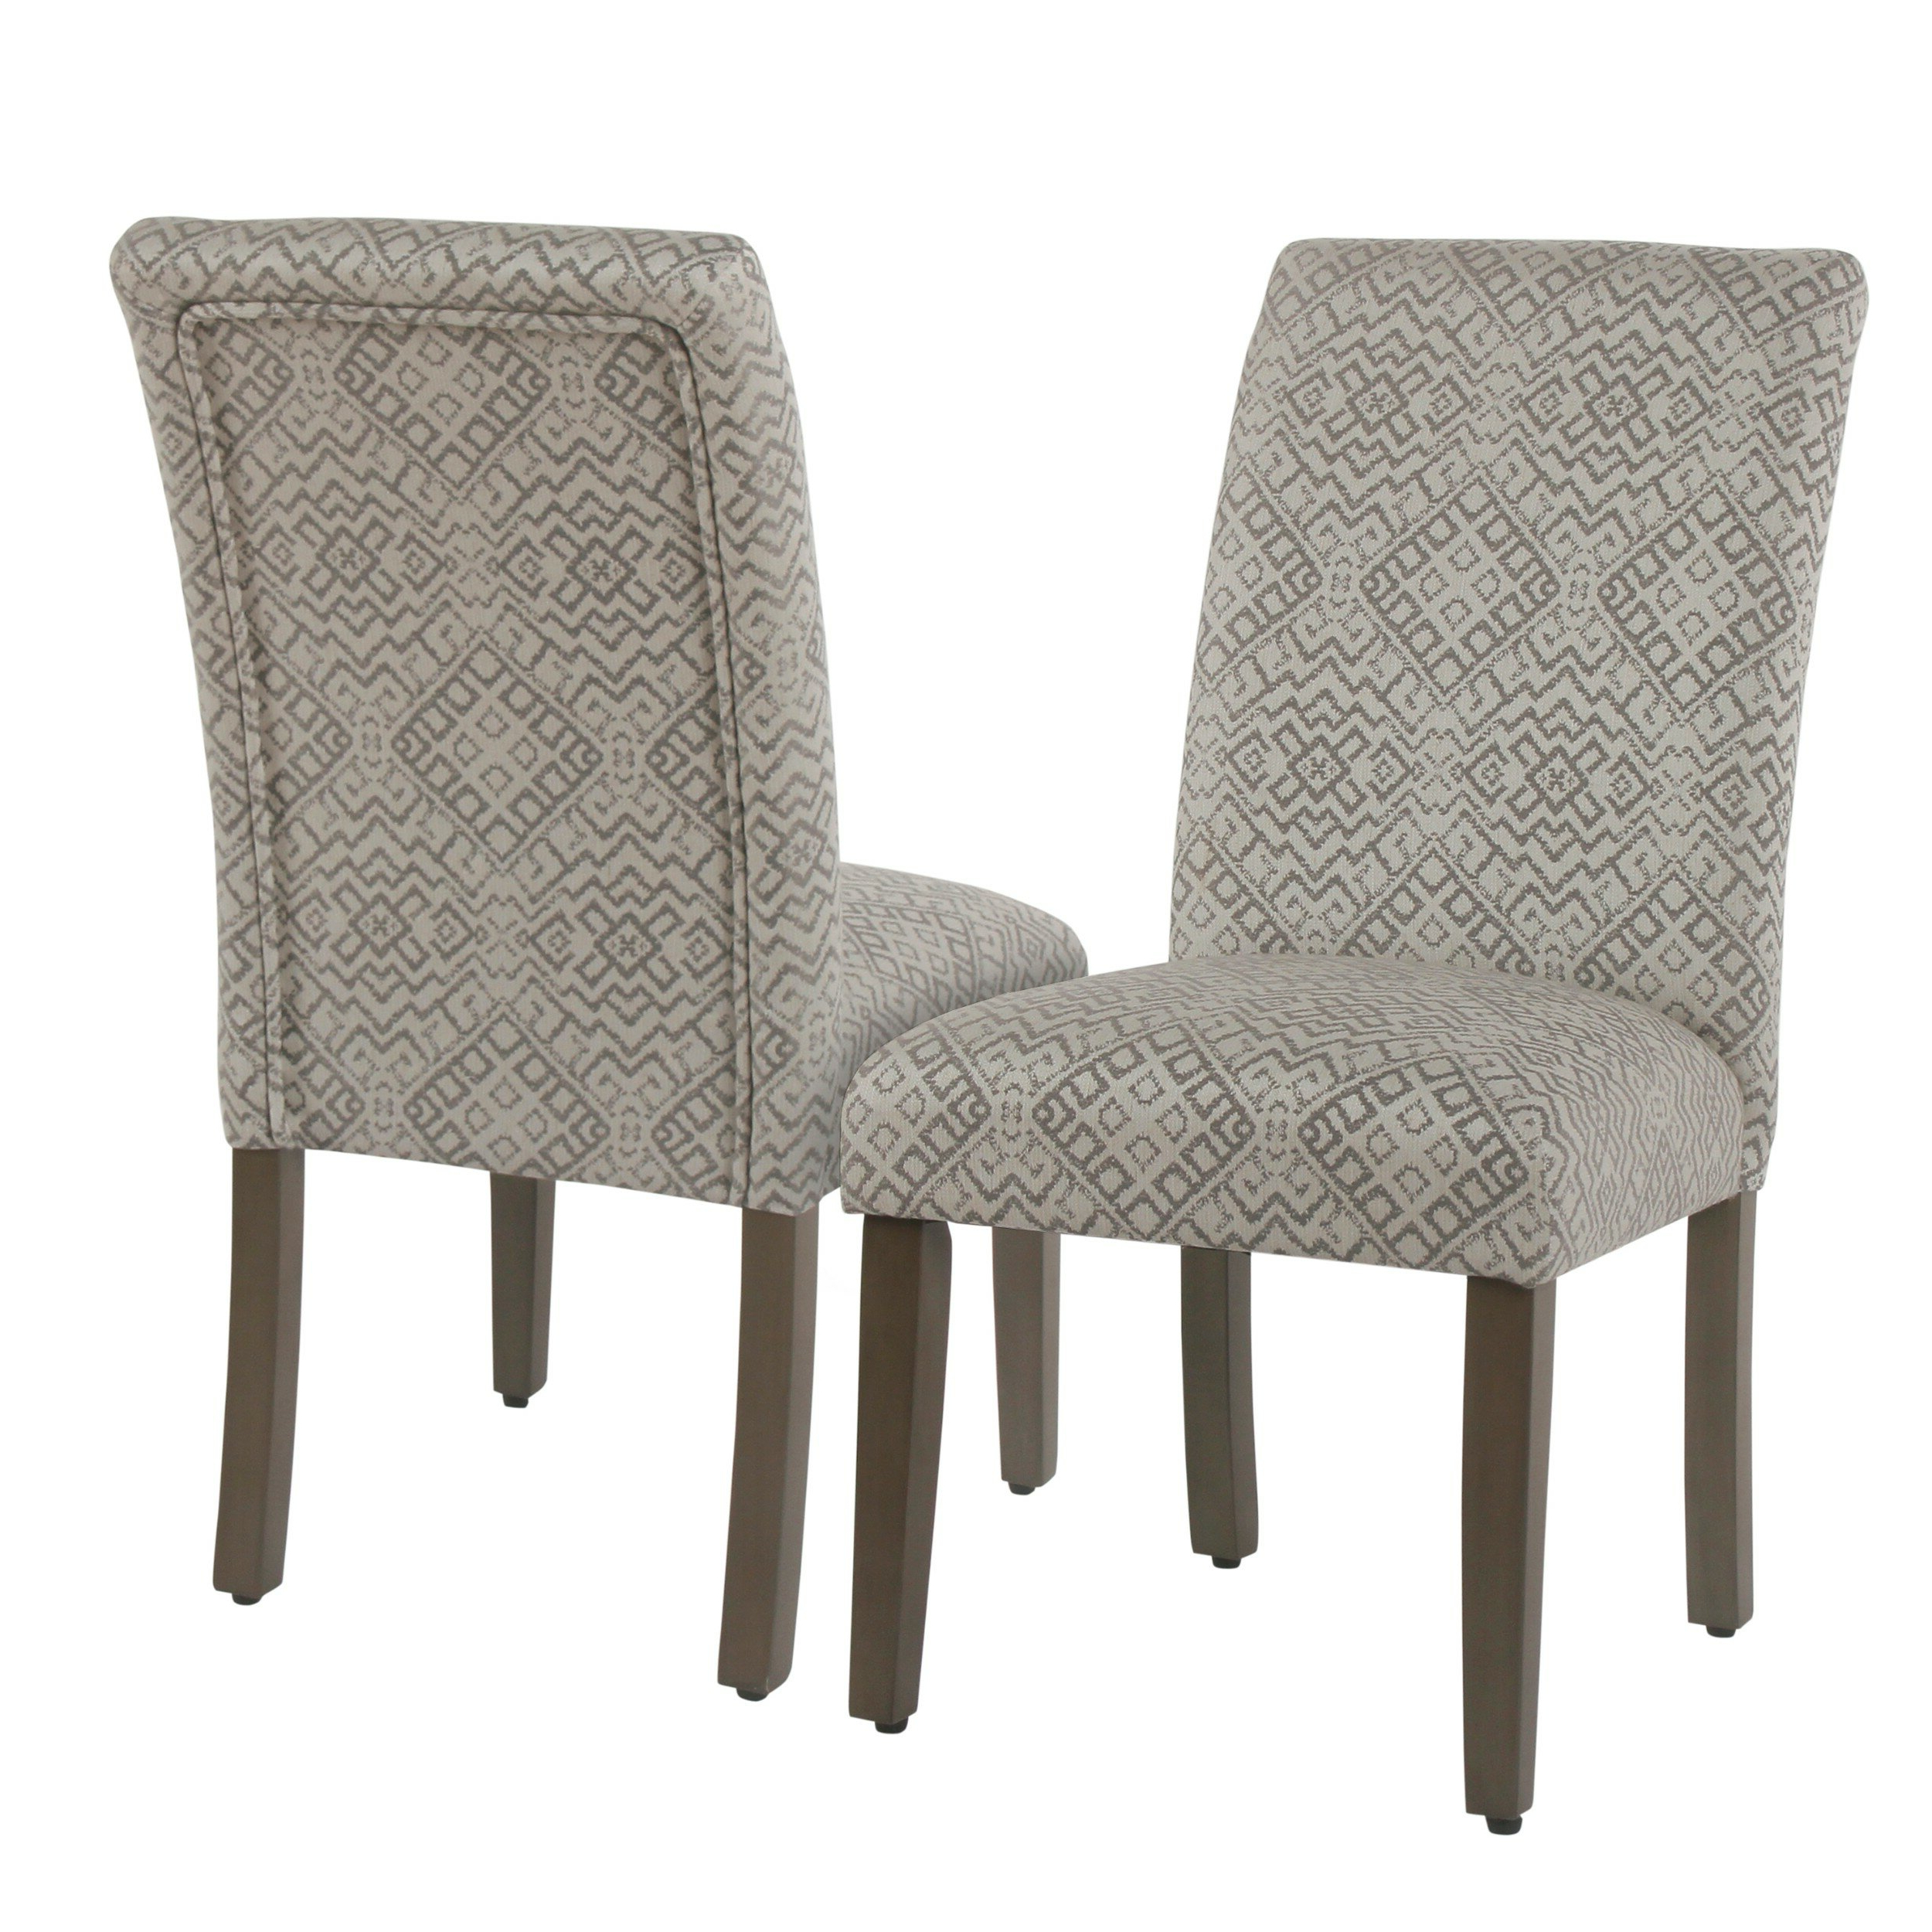 Famous Freetown Upholstered Dining Chair Inside Aime Upholstered Parsons Chairs In Beige (View 7 of 20)